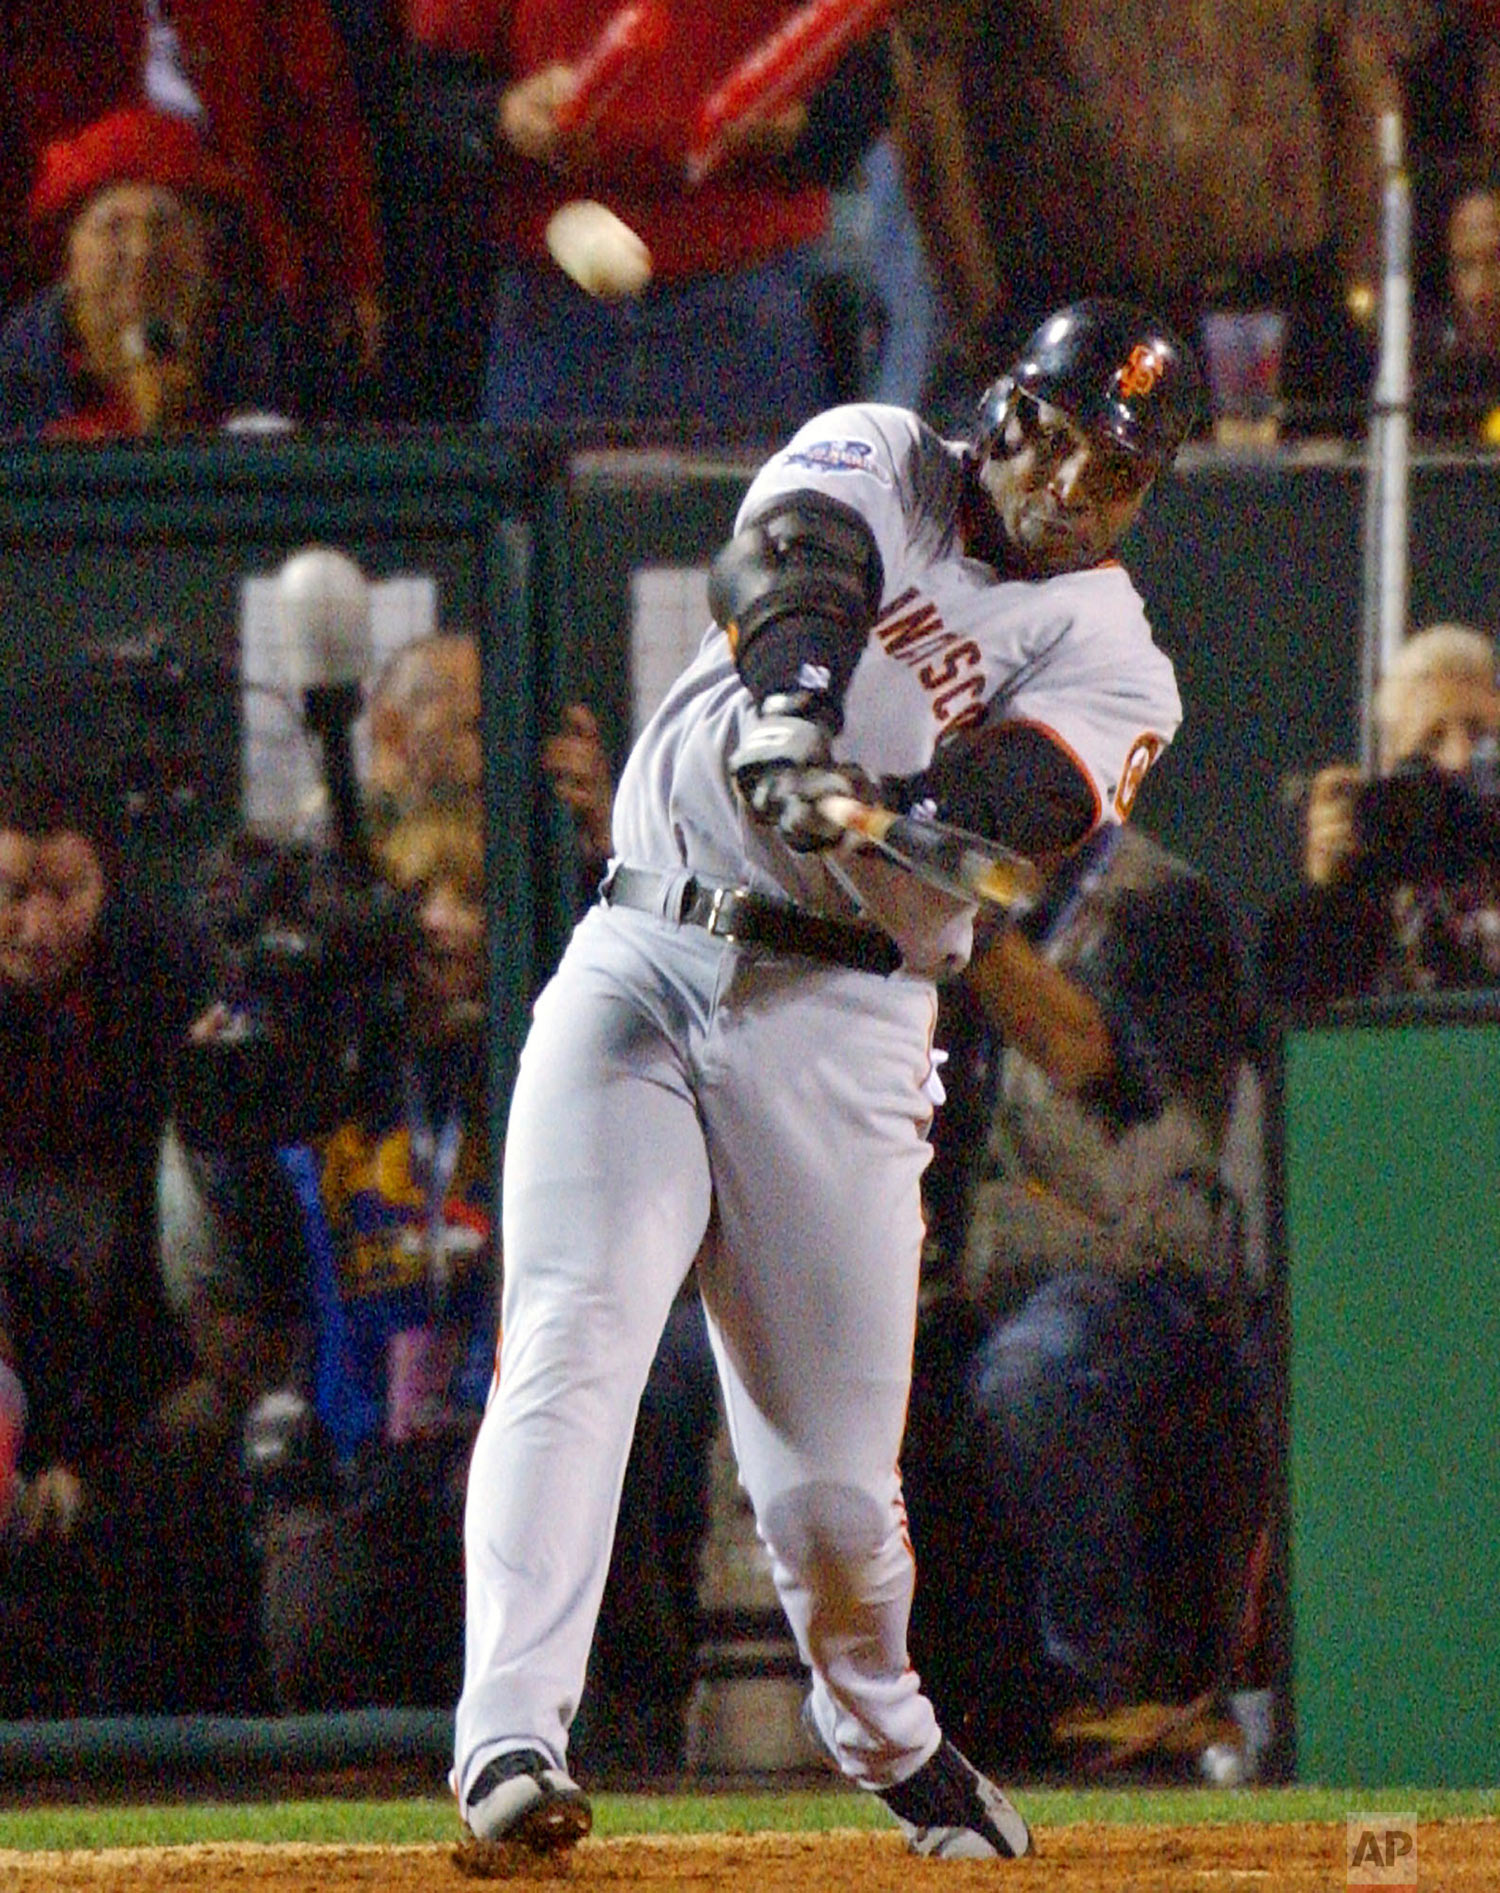 San Francisco Giants' Barry Bonds hits a solo home run in the ninth inning of Game 2 of the World Series against the Anaheim Angels in Anaheim, Calif., Sunday, Oct. 20, 2002. The Angels won the game 11-10 to tie the series at 1-1.  (AP Photo/Ben Margot)